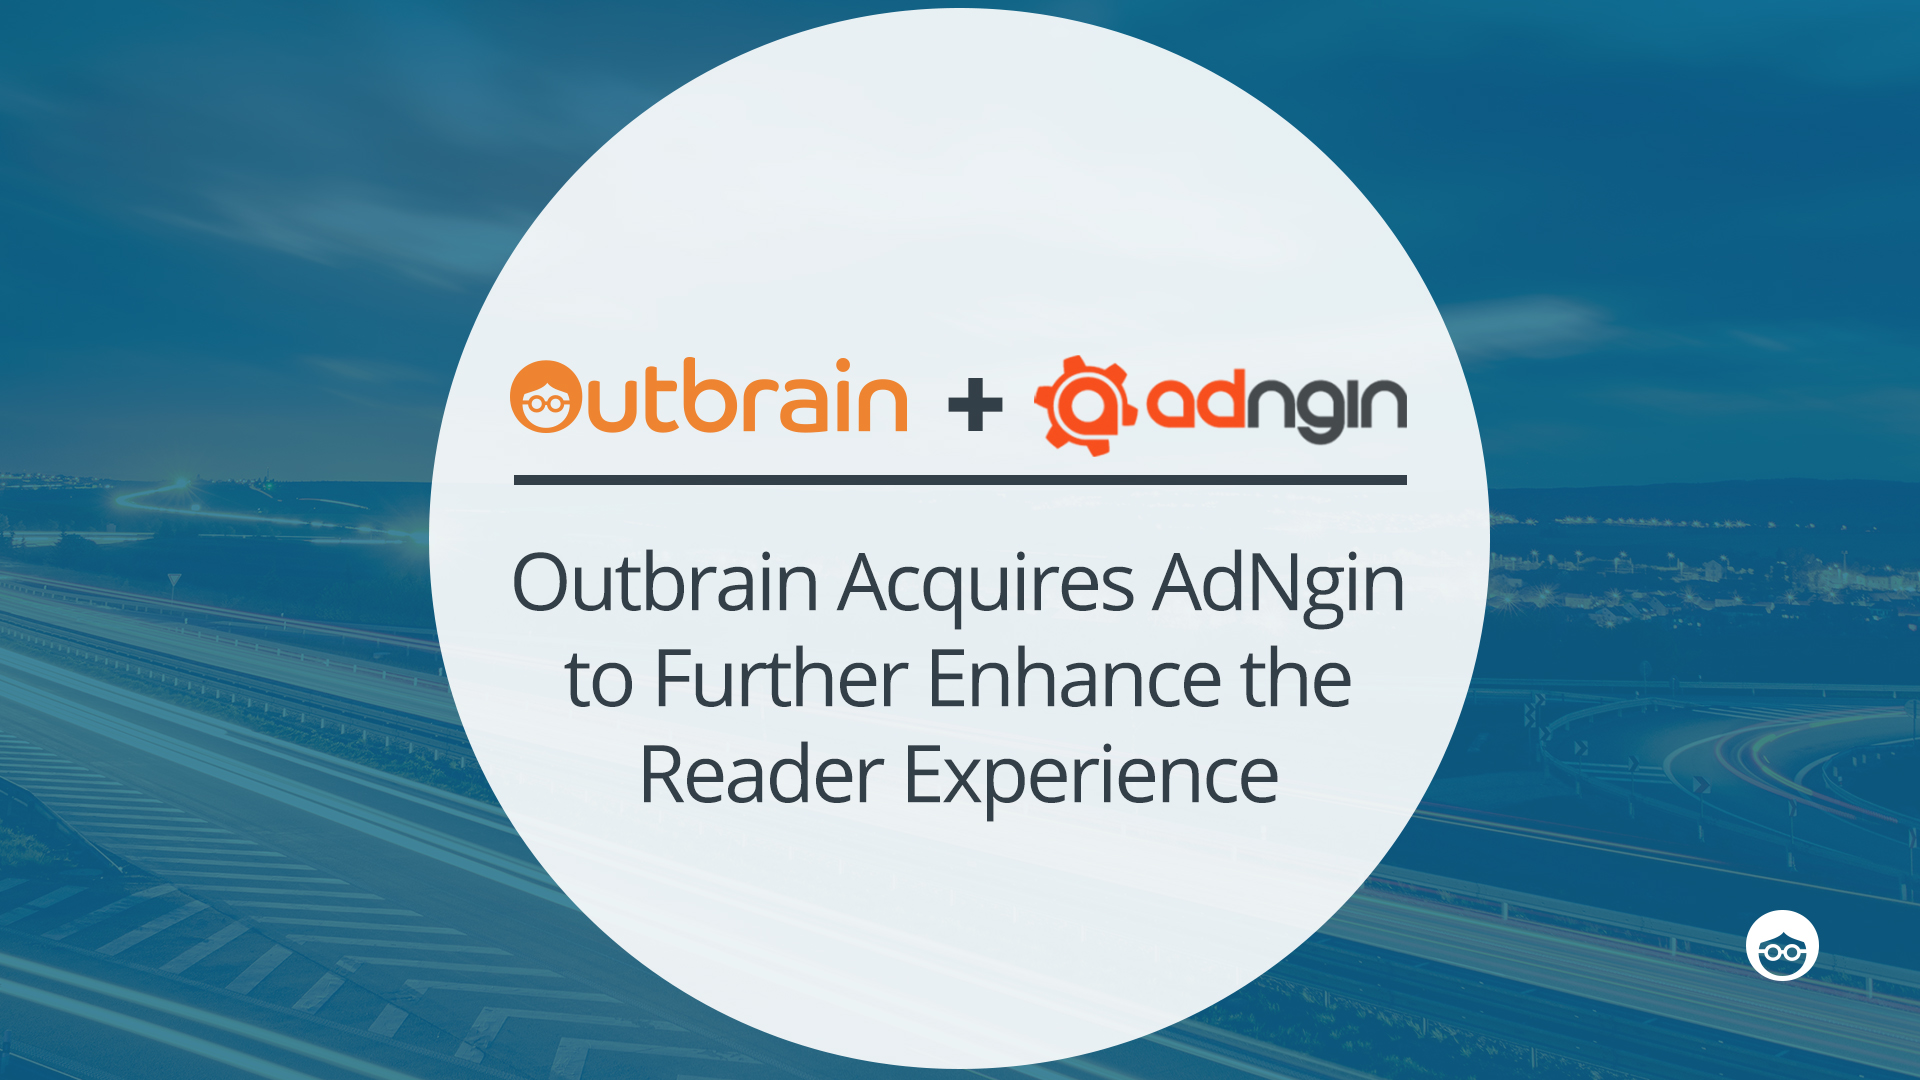 Outbrain Acquires AdNgin